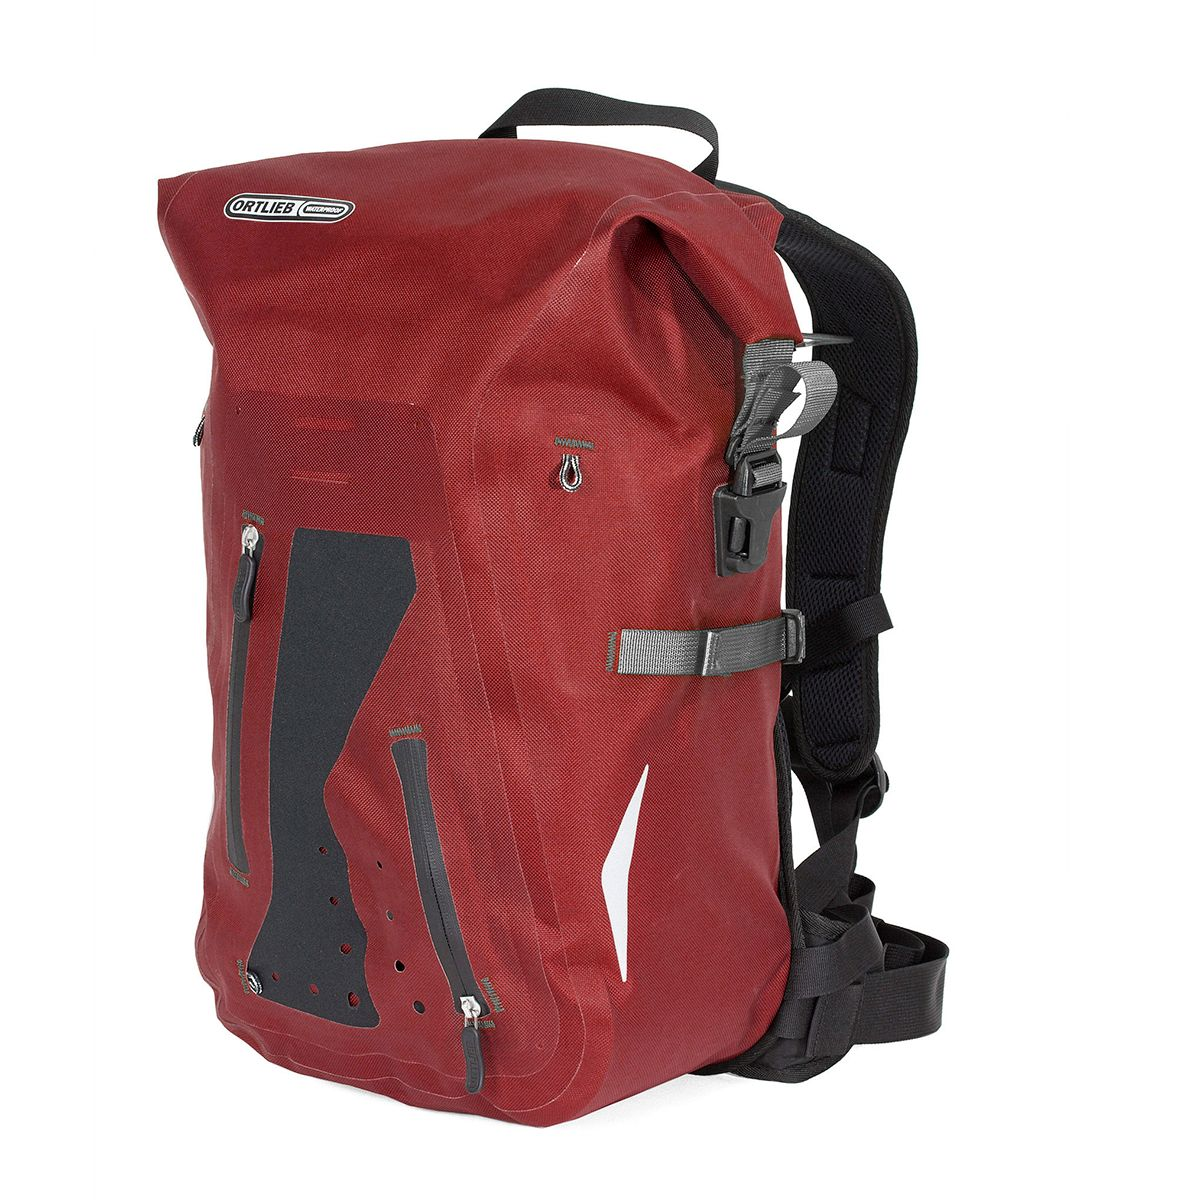 ORTLIEB Packman Pro2 backpack | Travel bags